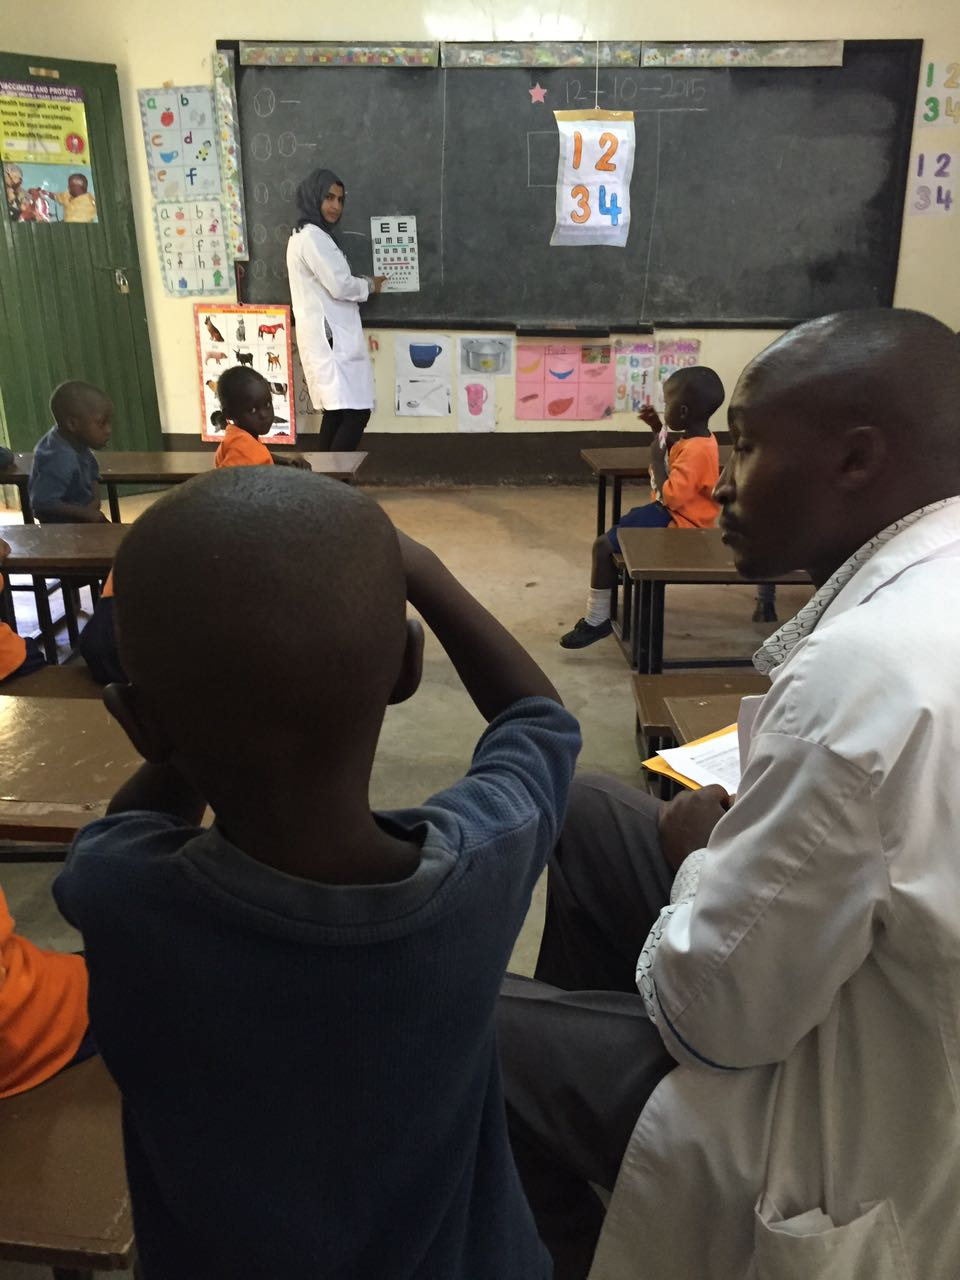 Dr. Sidiqa and the chalkboard while a young student performs an eye examination